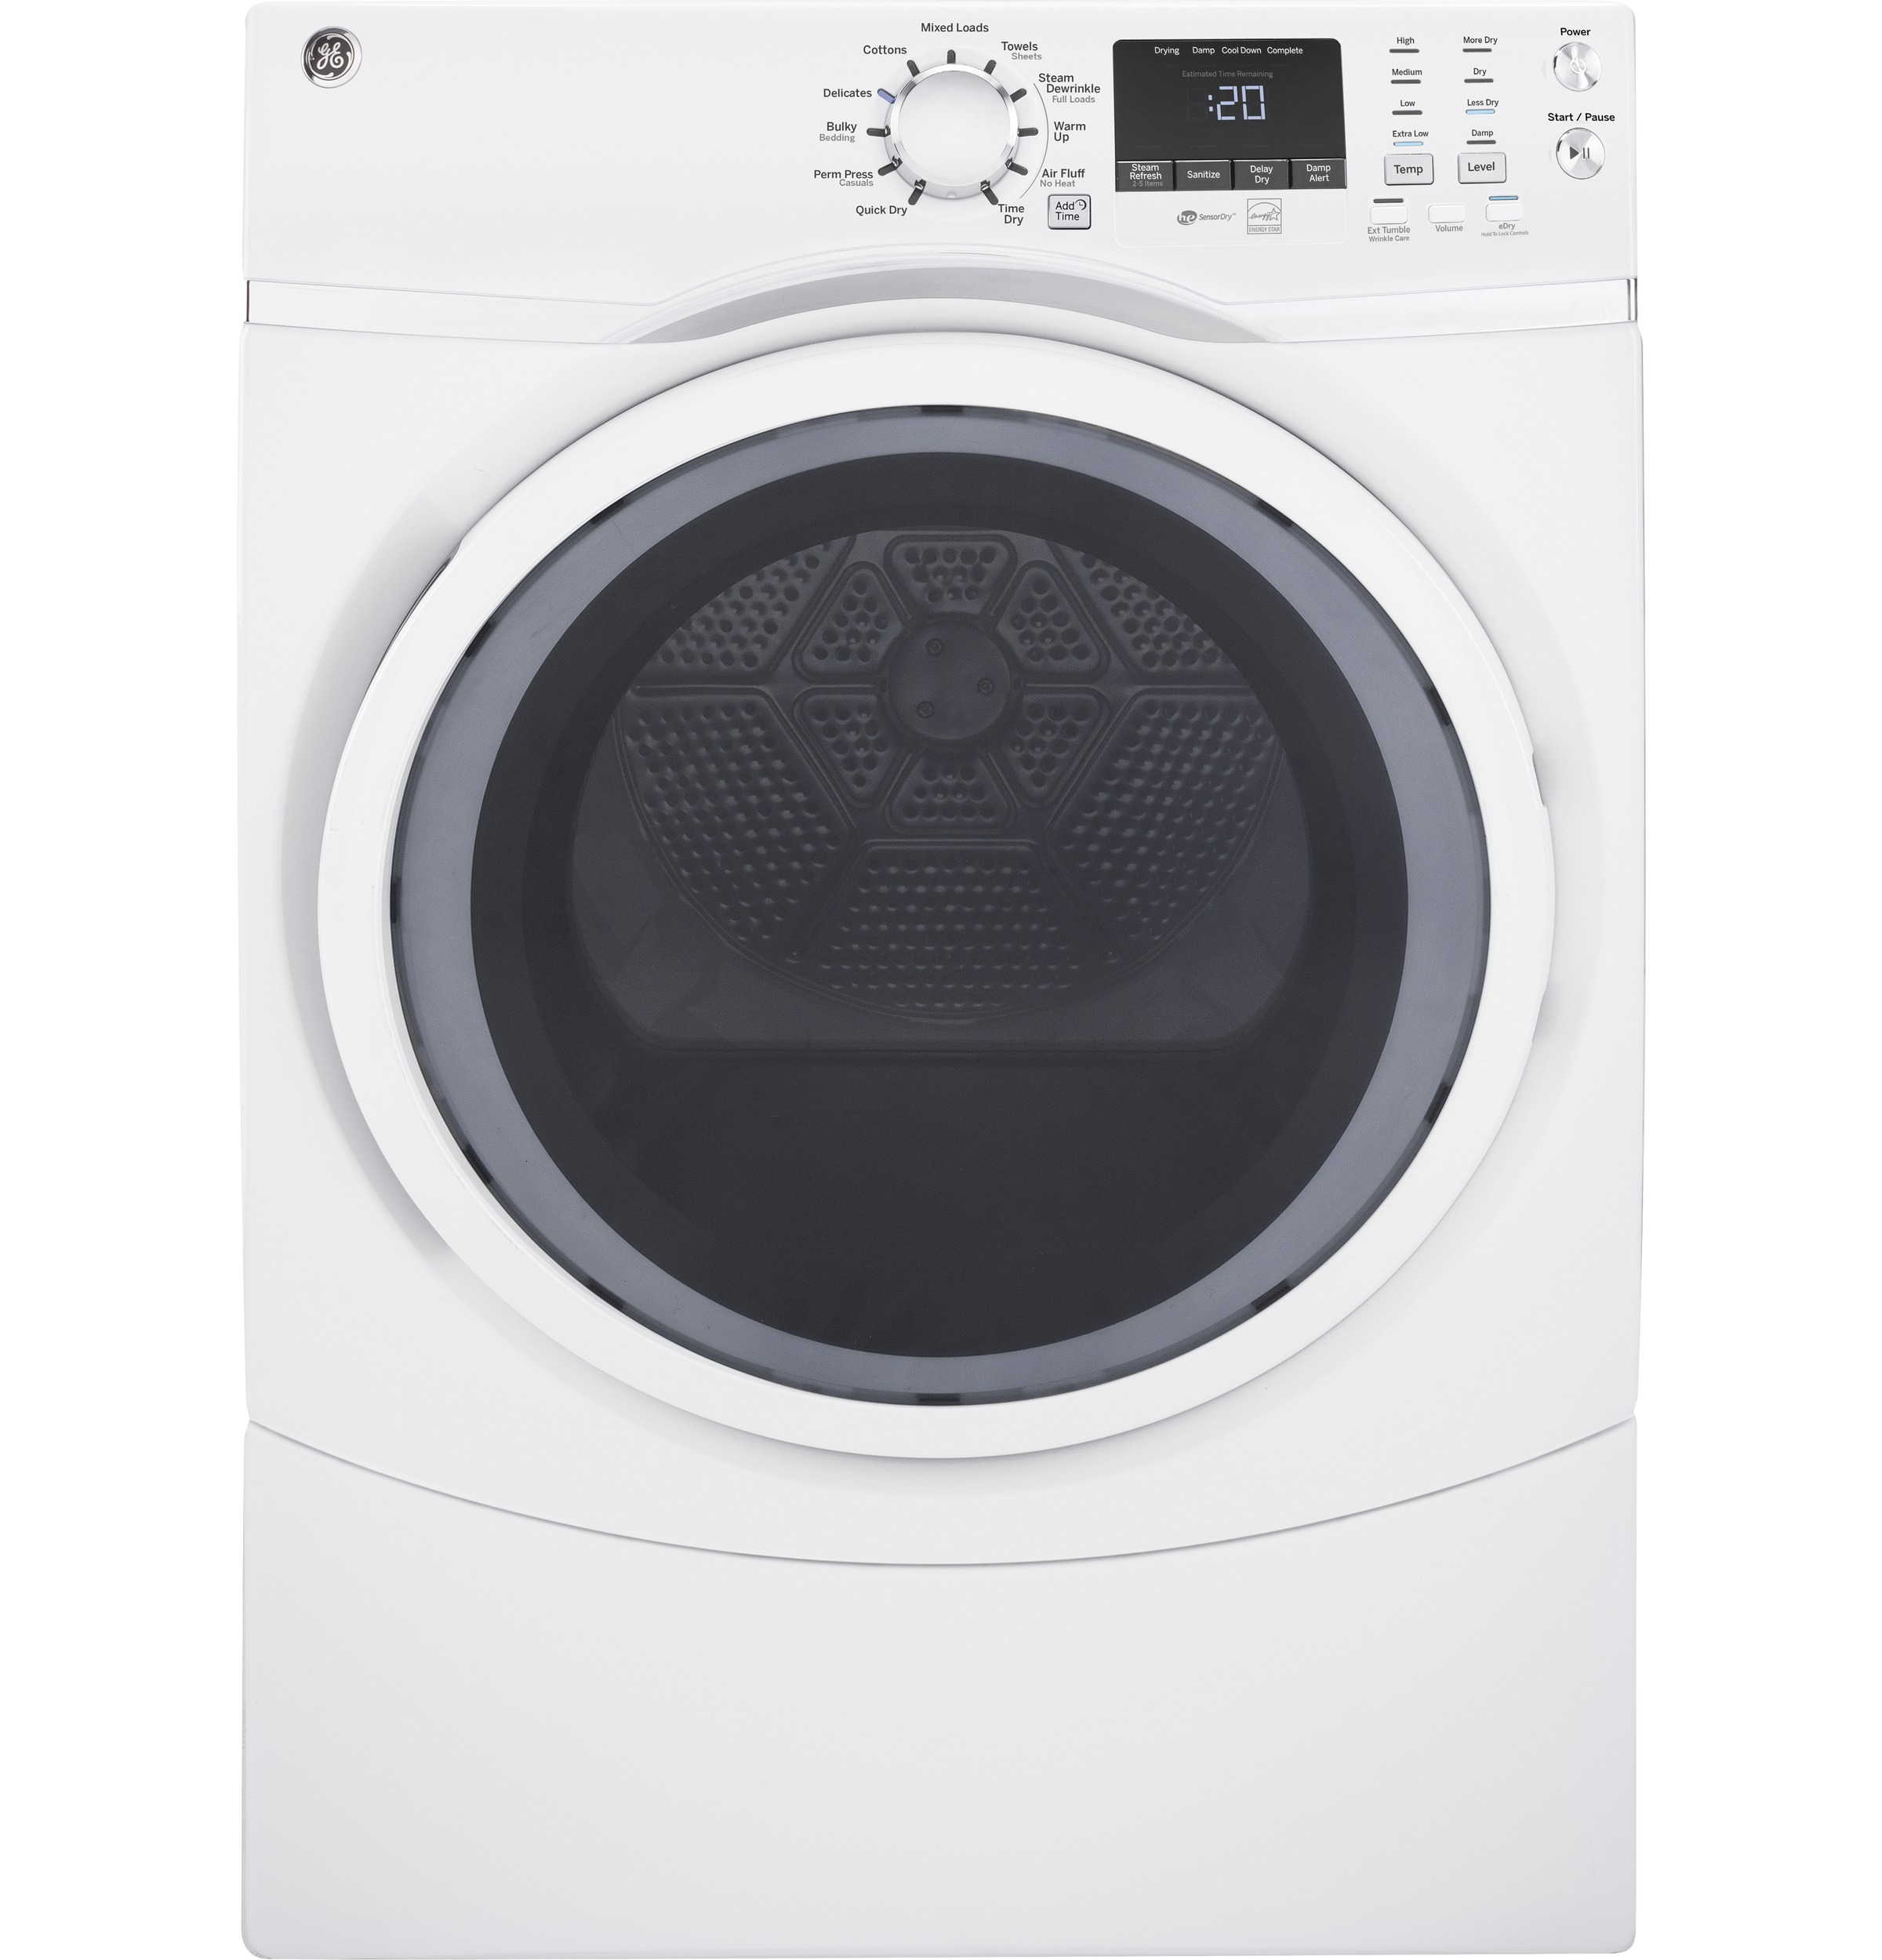 Model: GFD45ESSMWW | GE GE® 7.5 cu. ft. Capacity Front Load Electric Dryer with Steam